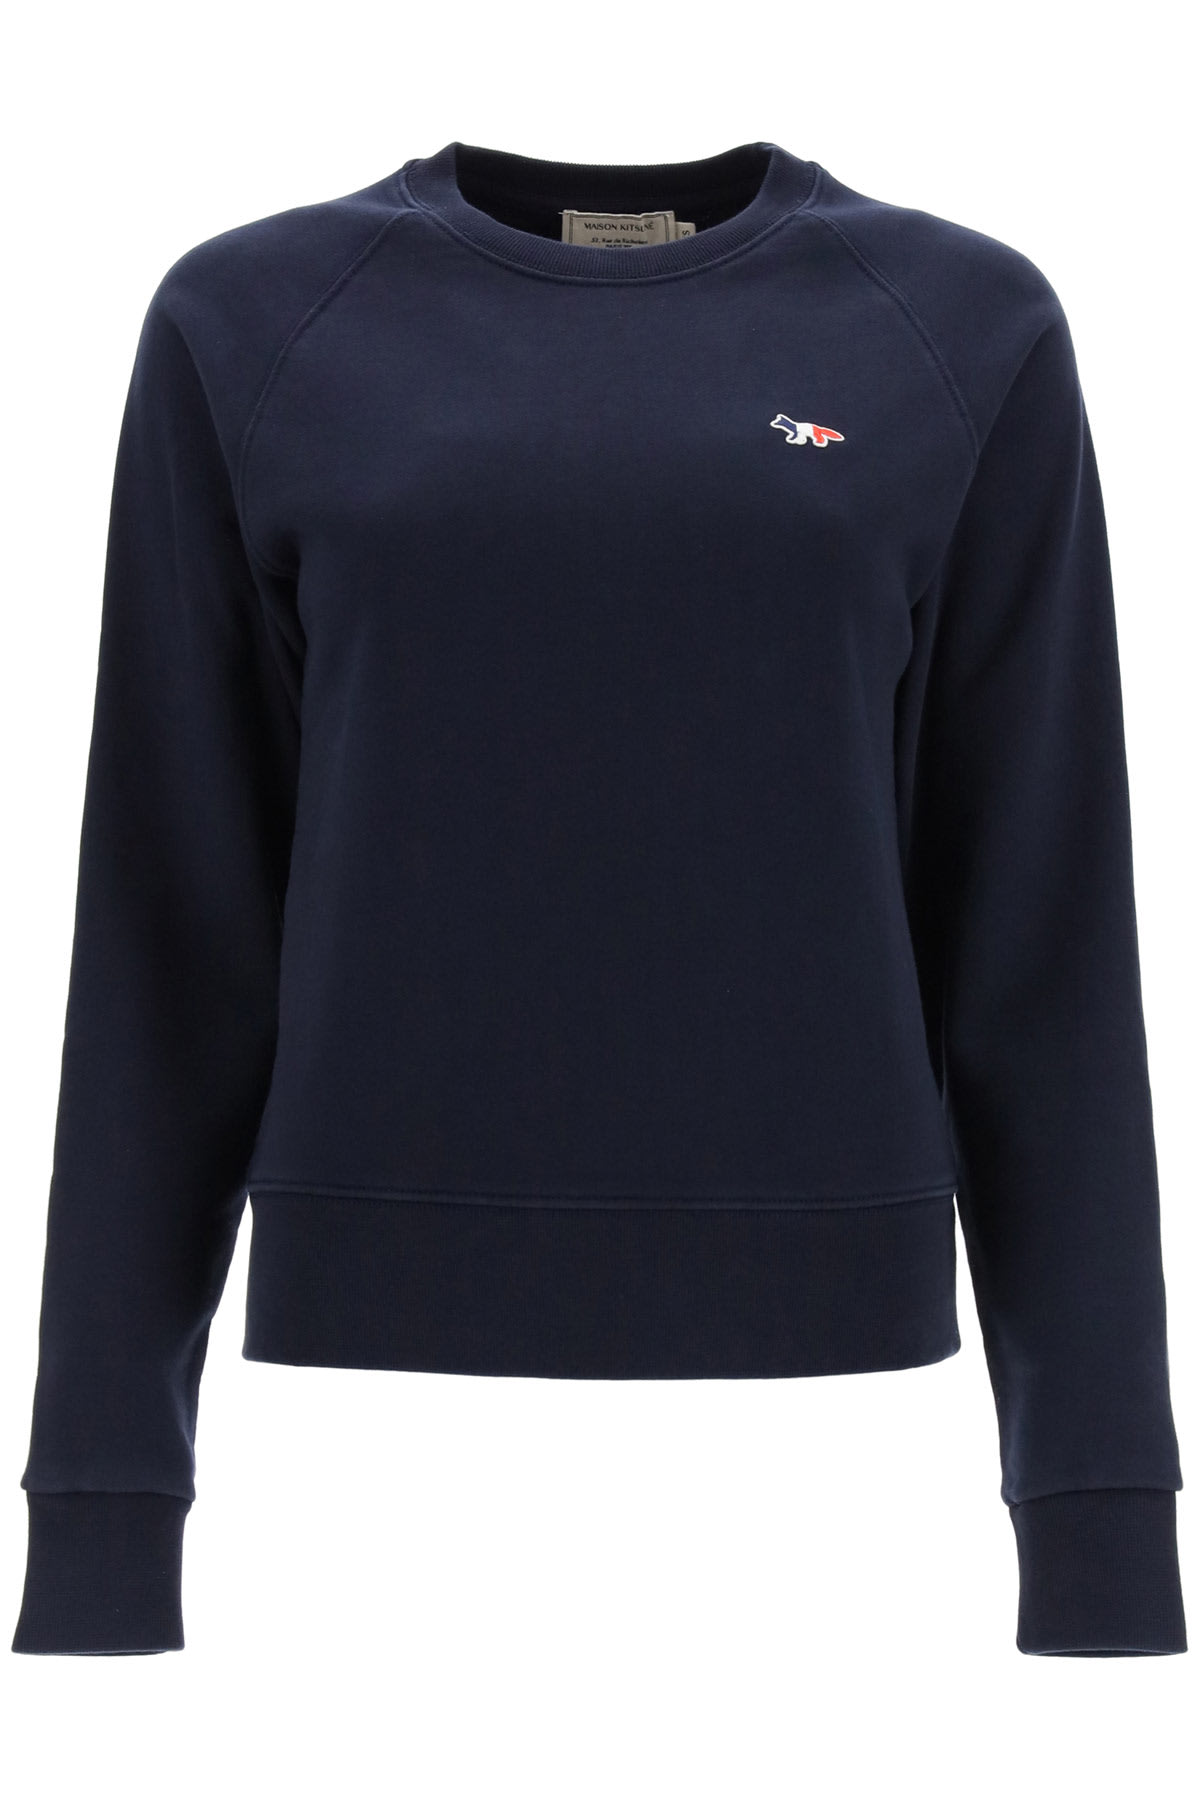 Maison Kitsuné TRICOLOR FOX PATCH SWEATSHIRT